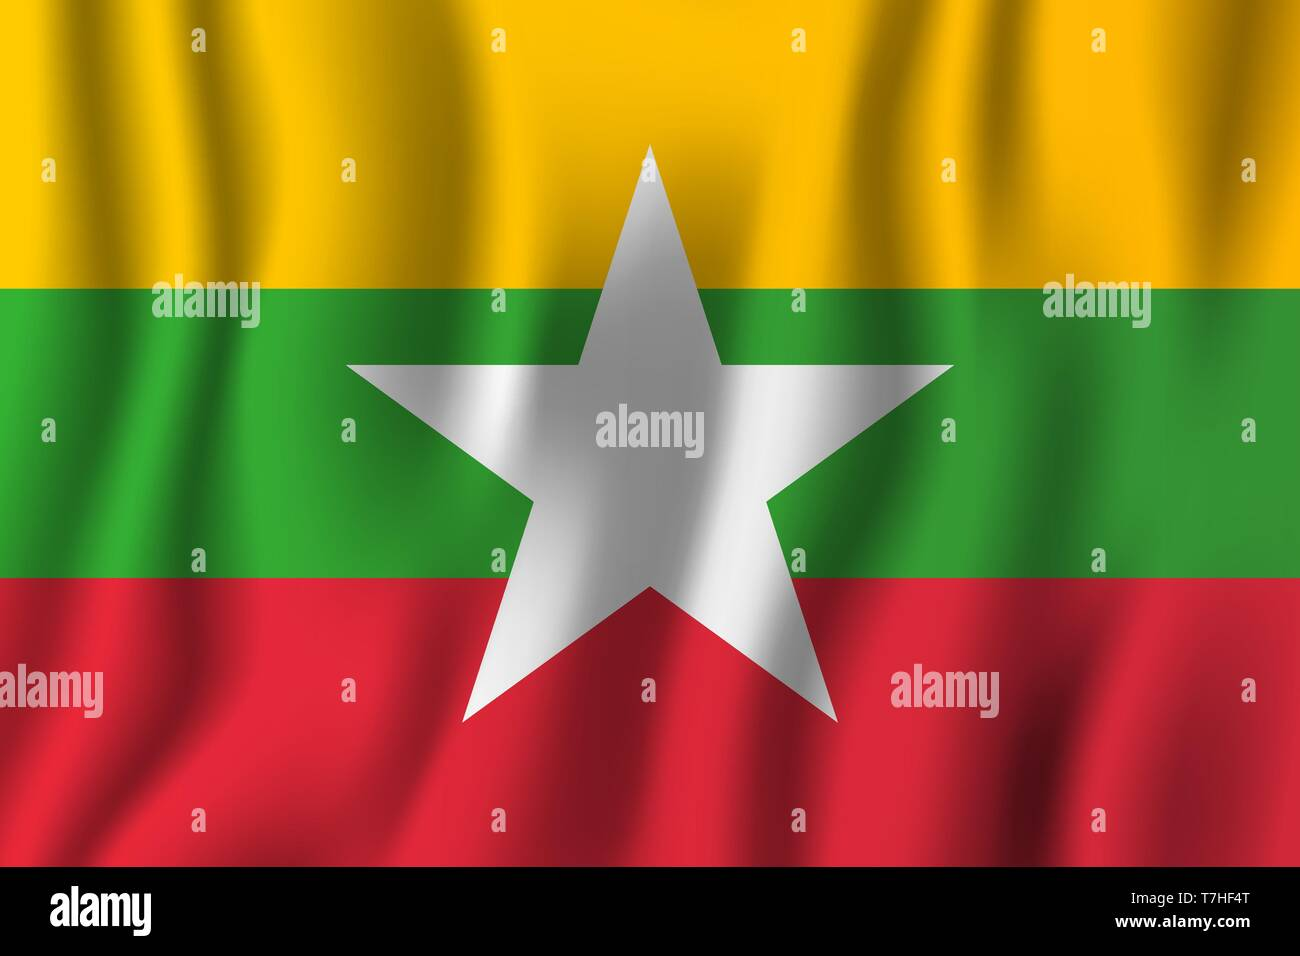 Myanmar realistic waving flag vector illustration. National country background symbol. Independence day. - Stock Vector